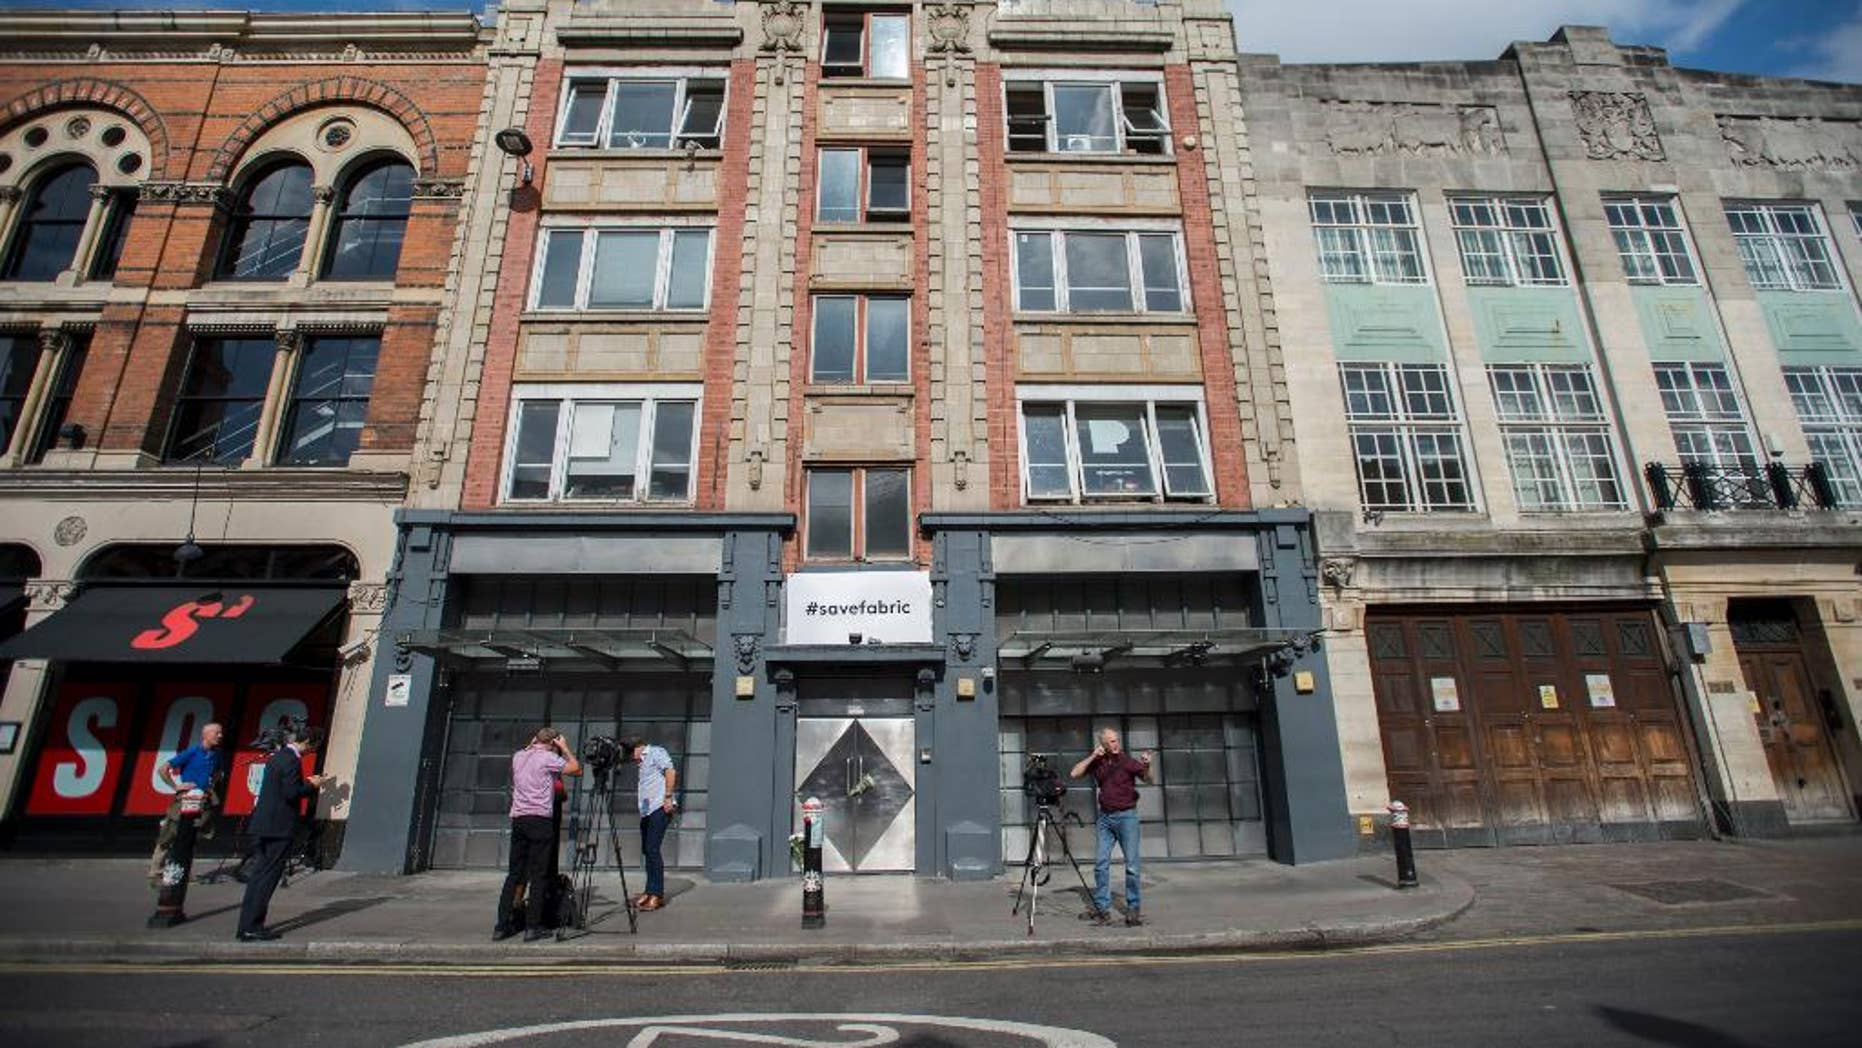 """A general view of Fabric nightclub in London Wednesday Sept. 7, 2016. London's mayor says the city's status as a nightlife hub is under threat, after one of its most famous nightclubs was ordered to close following drug-related incidents. Local authority Islington Council revoked the license of the Fabric nightclub on Wednesday, saying staff had failed to control a """"culture of drug use"""" on the premises.  (David Mirzoeff/PA via AP)"""